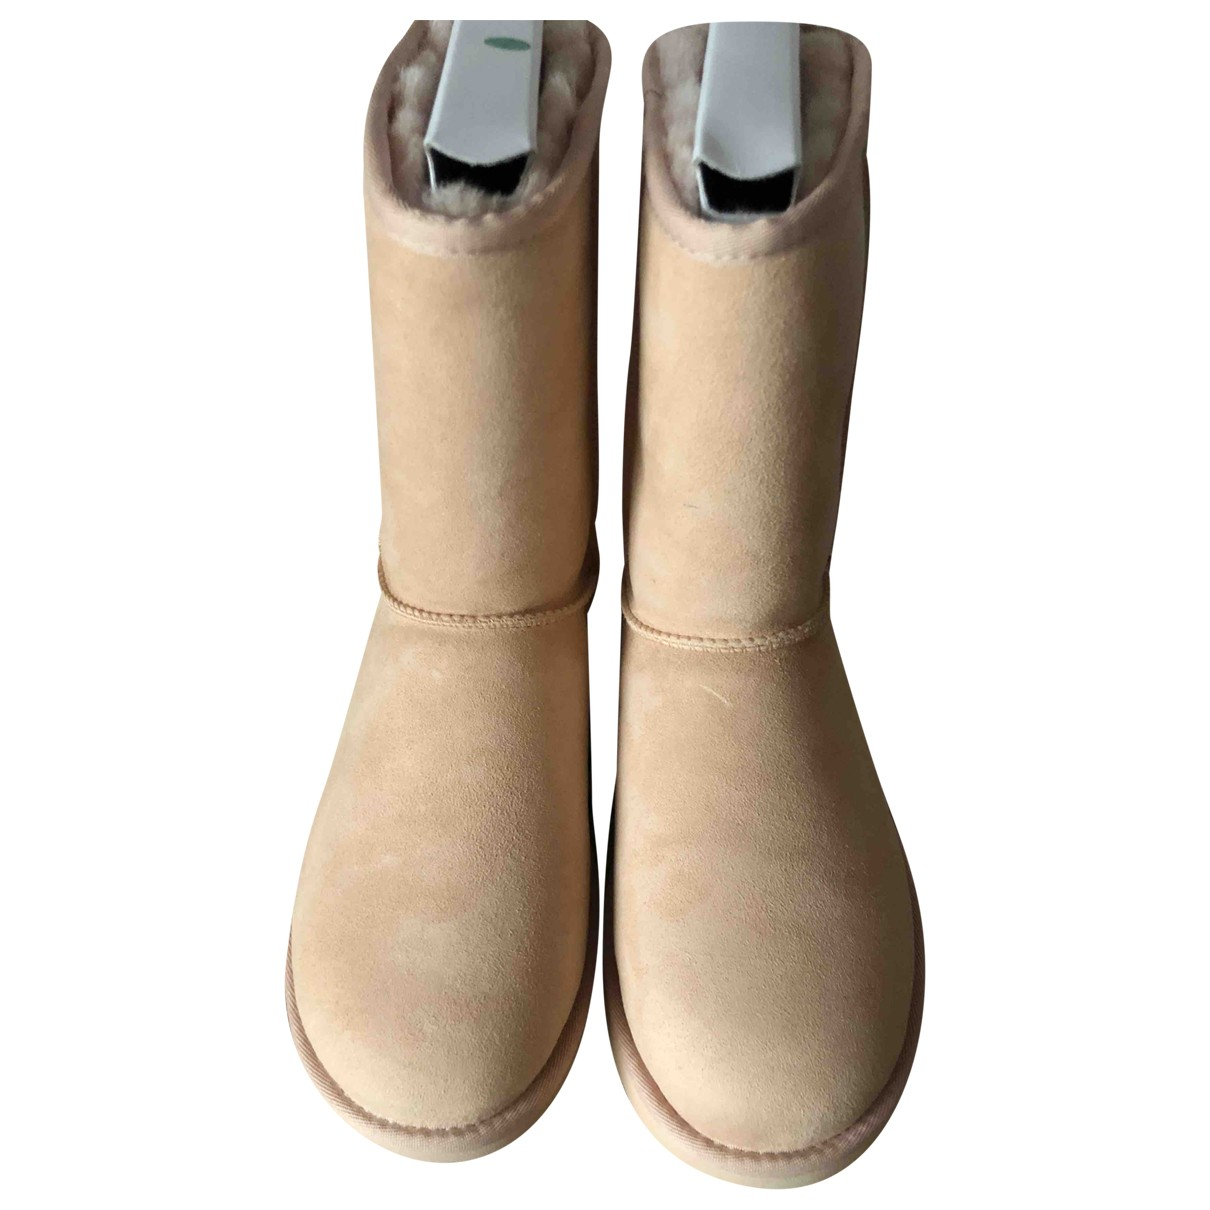 Ugg N Pink Suede Boots for Women 8 UK